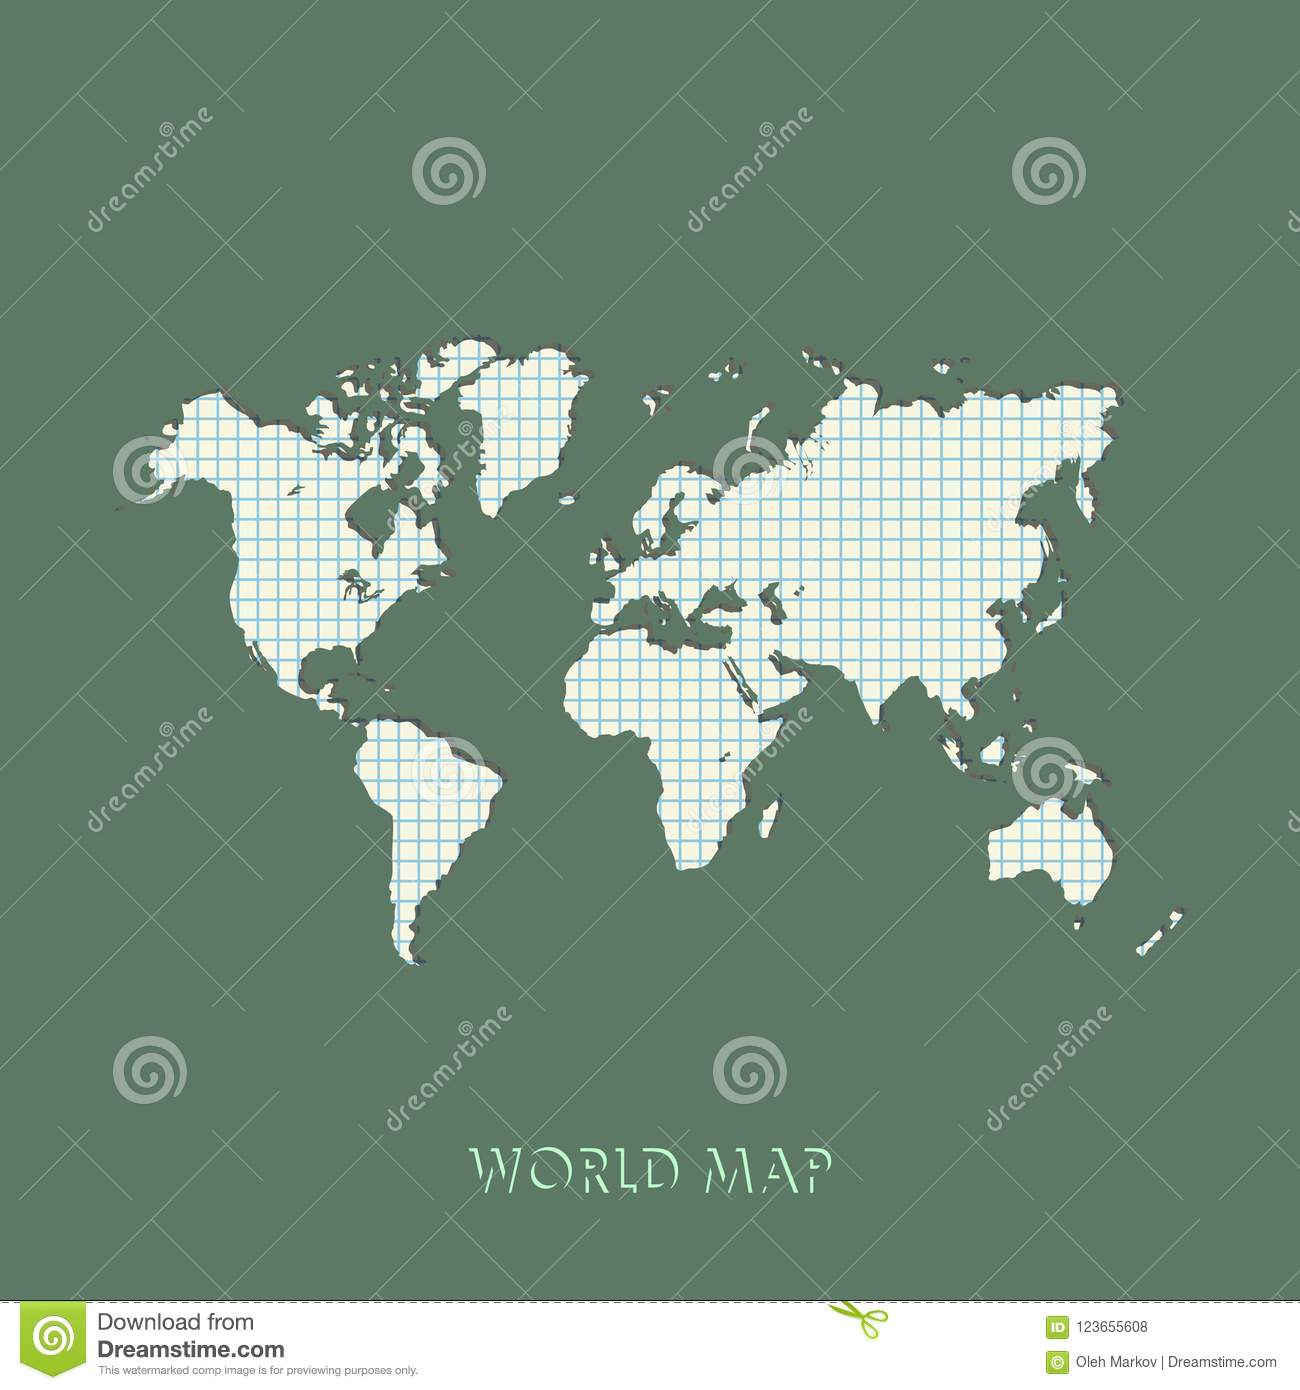 World Map Vector Illustration. Mercator Projection Worldmap. Stock on model of map, set of map, photography of map, drawing of map, map of map, animation of map, texture of map, element of map, depression of map, shape of map, scale of map, type of map, view of map, orientation of map,